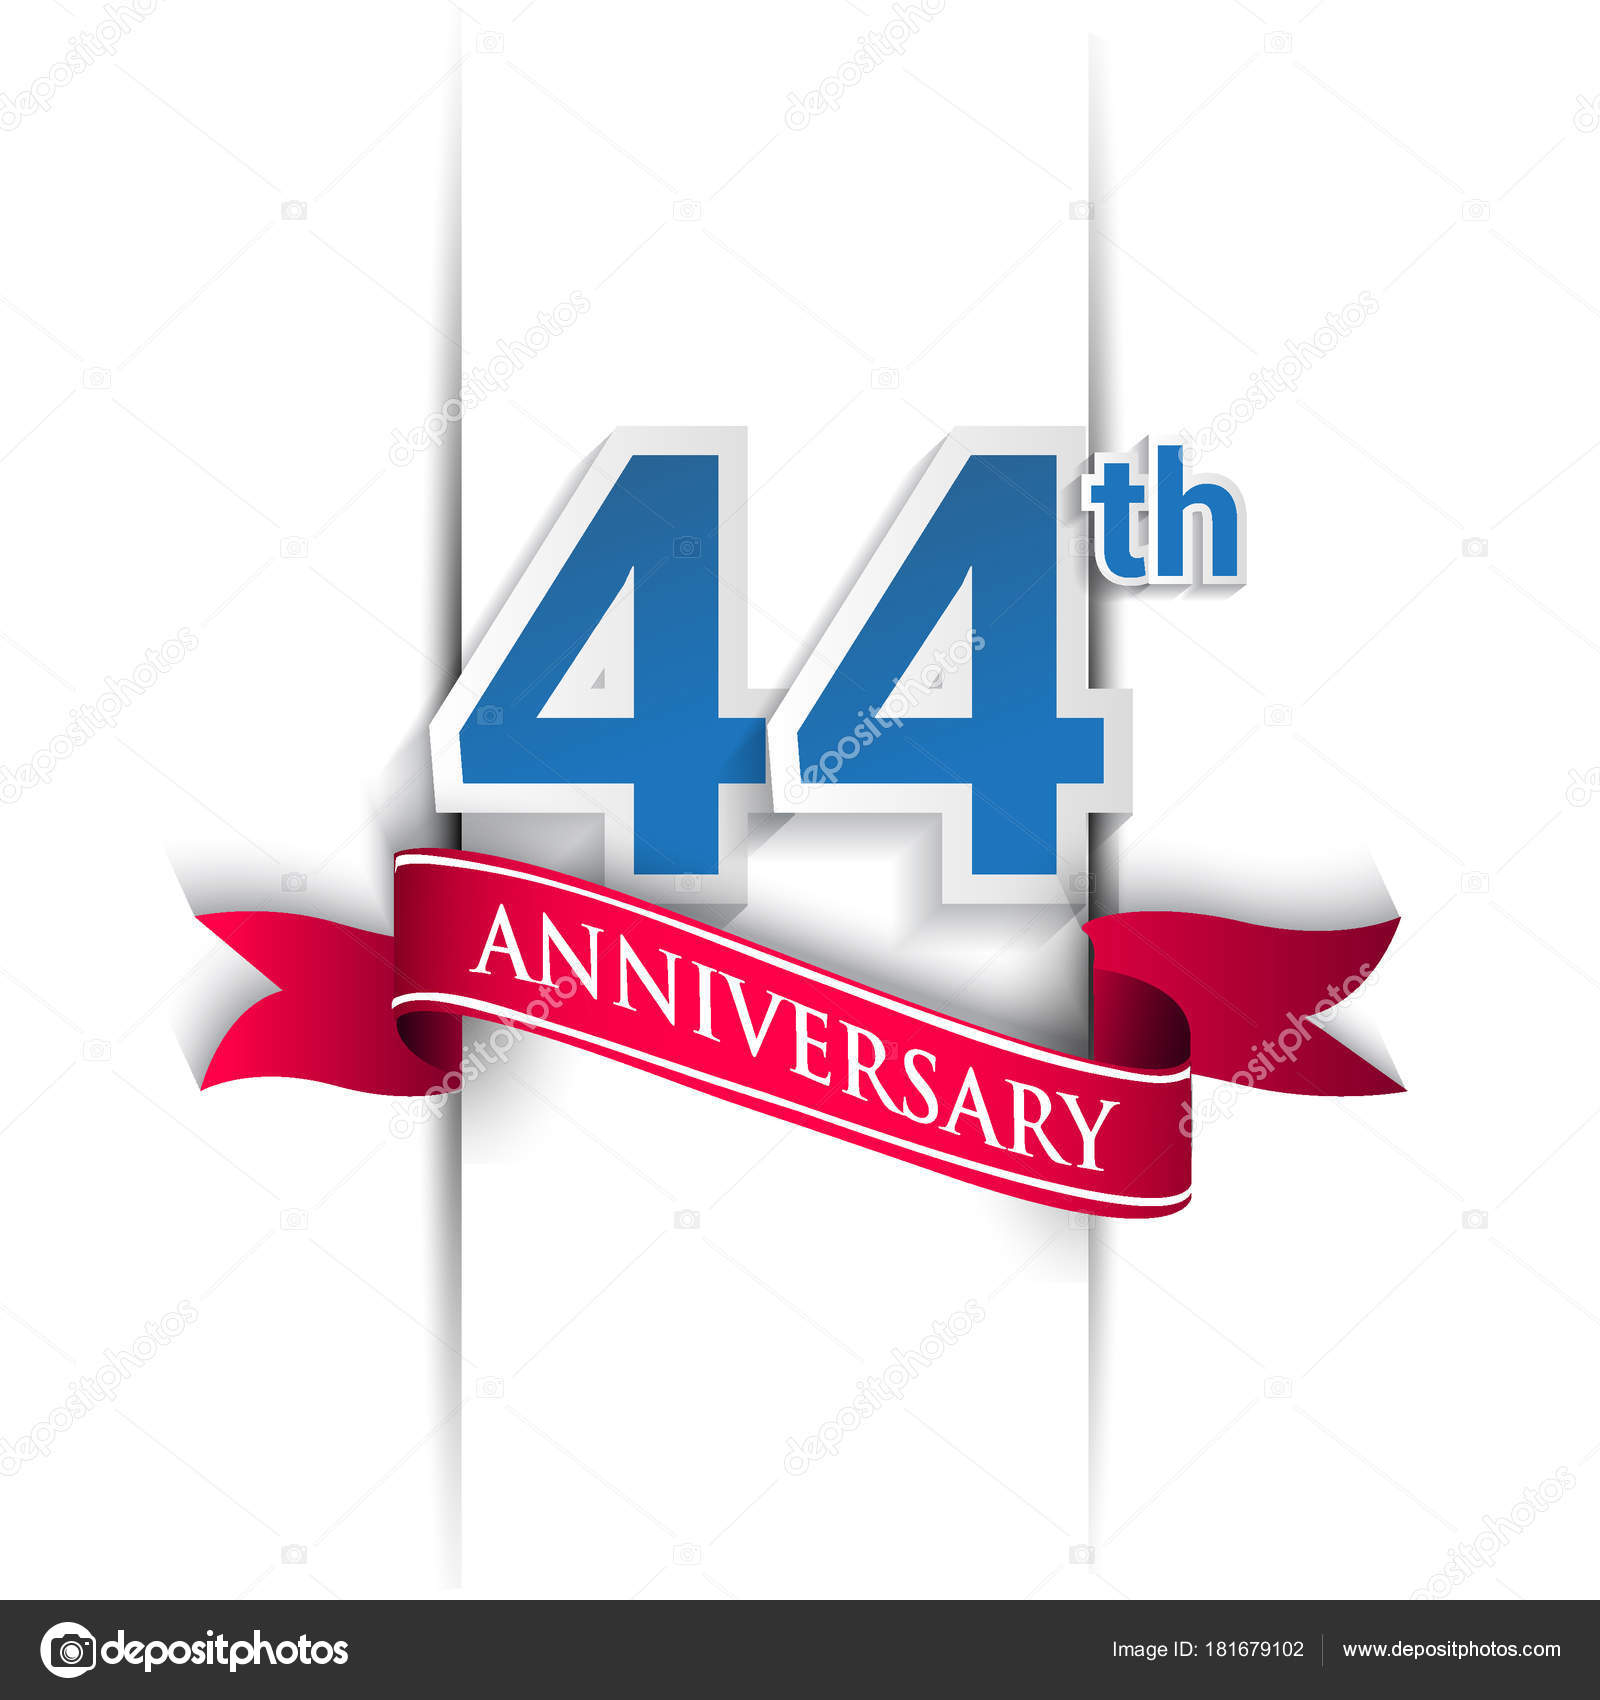 44th anniversary celebration logo vector design template elements 44th anniversary celebration logo vector design template elements your birthday stock vector biocorpaavc Gallery